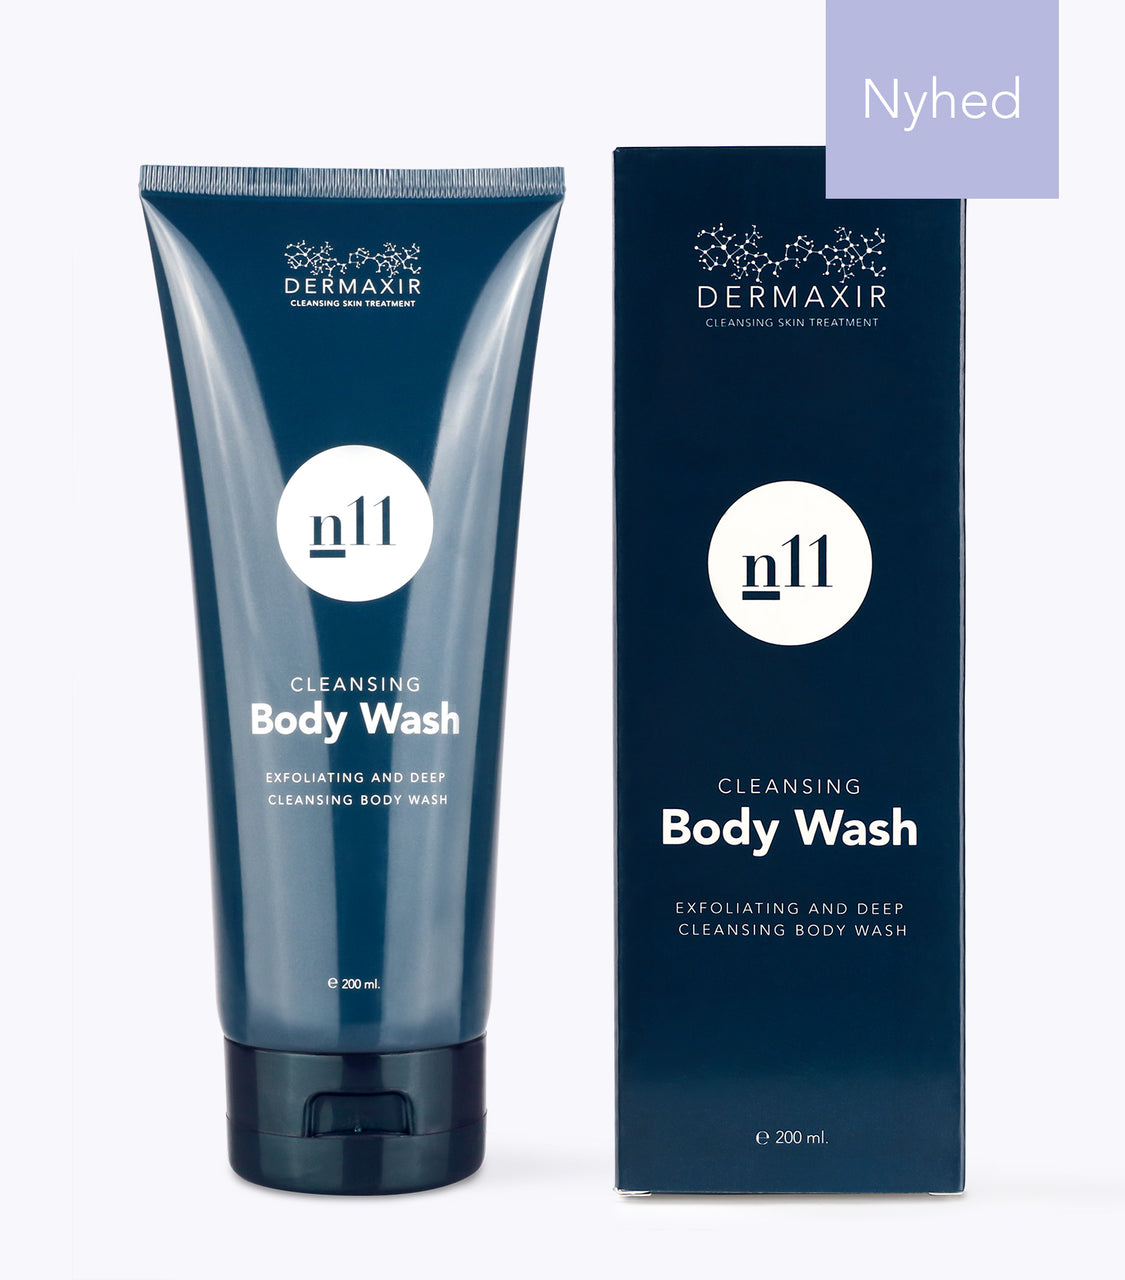 n11 Cleansing Body Wash - dermaxir